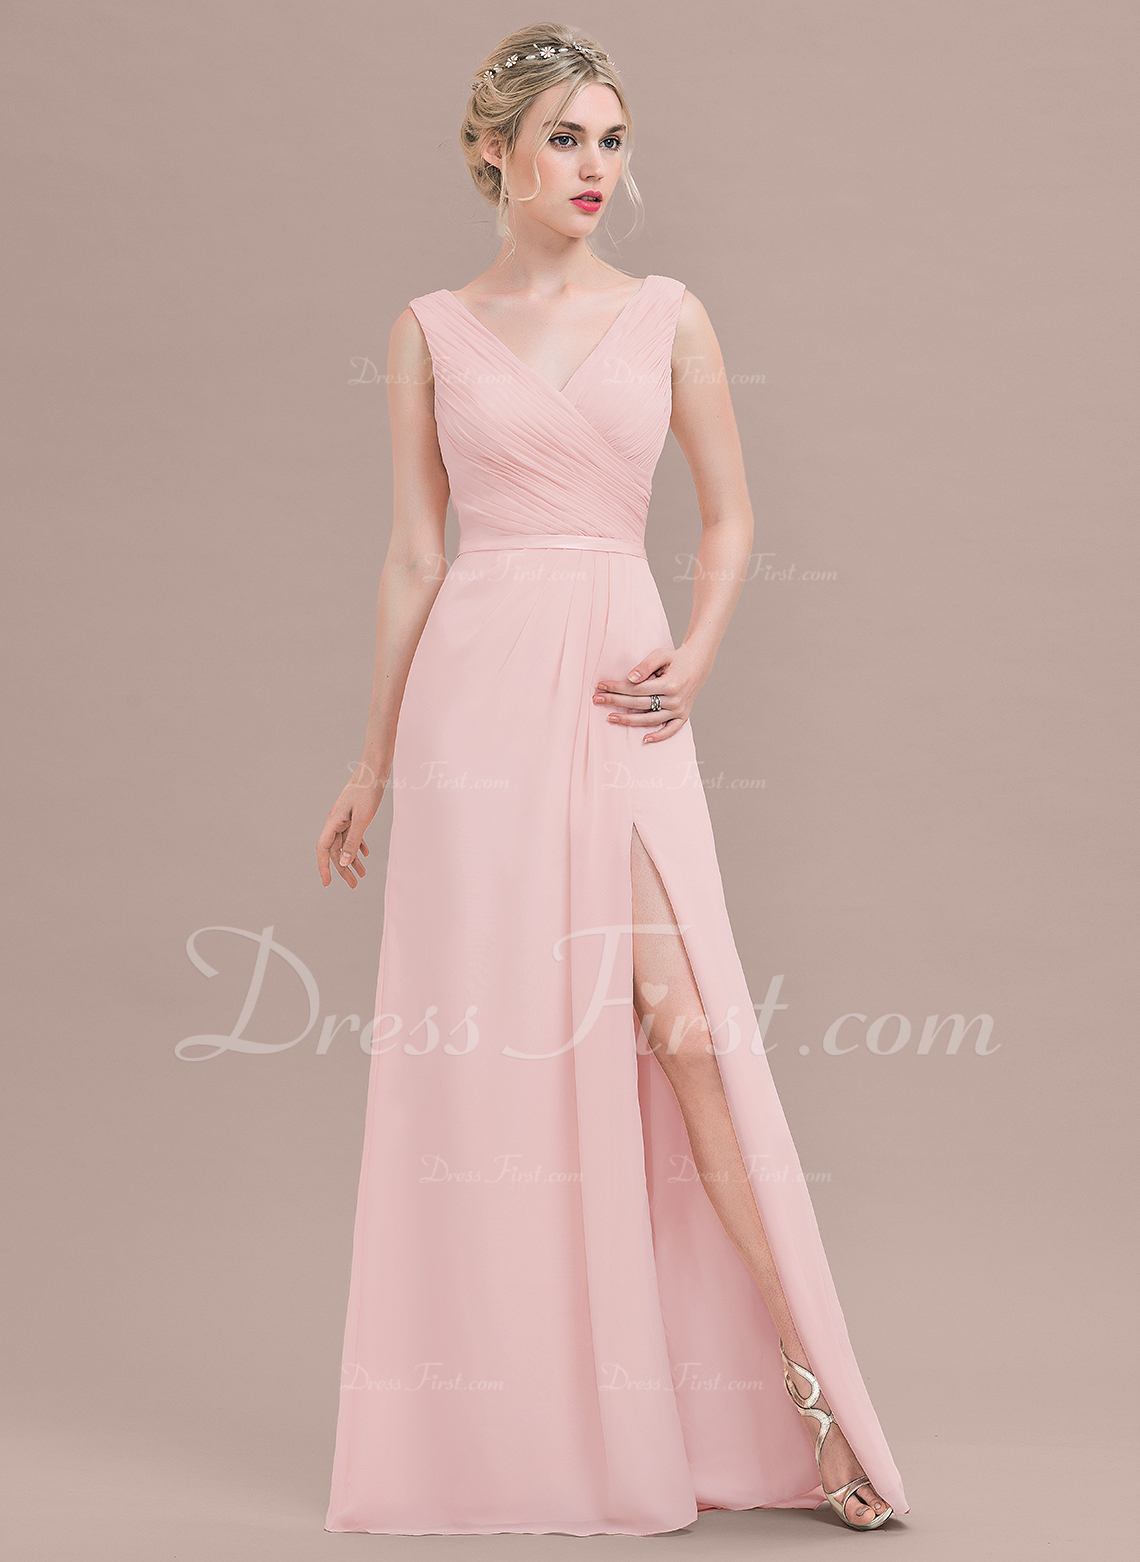 A-Line/Princess V-neck Floor-Length Chiffon Evening Dress With Ruffle Split Front